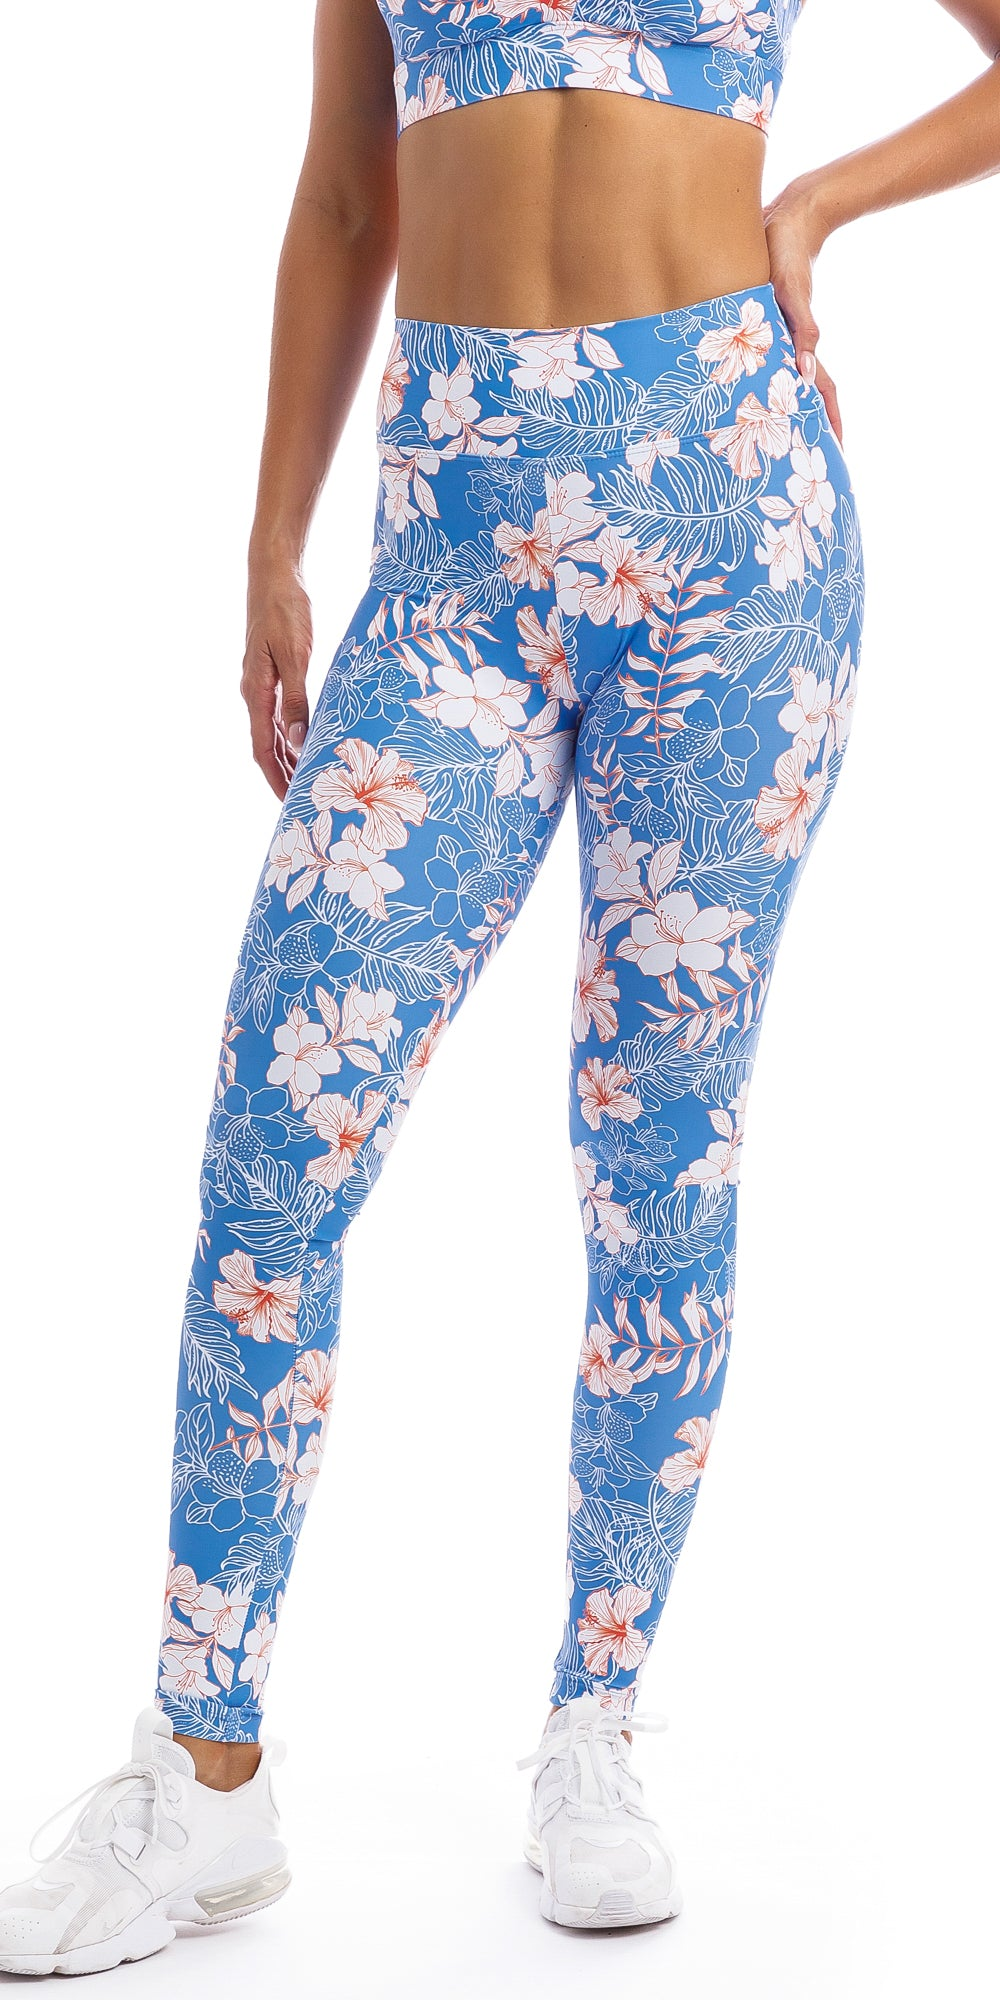 Lady wearing blue, white, pink floral Hibiscus Kiss print extra long leggings & matching diamond back bra